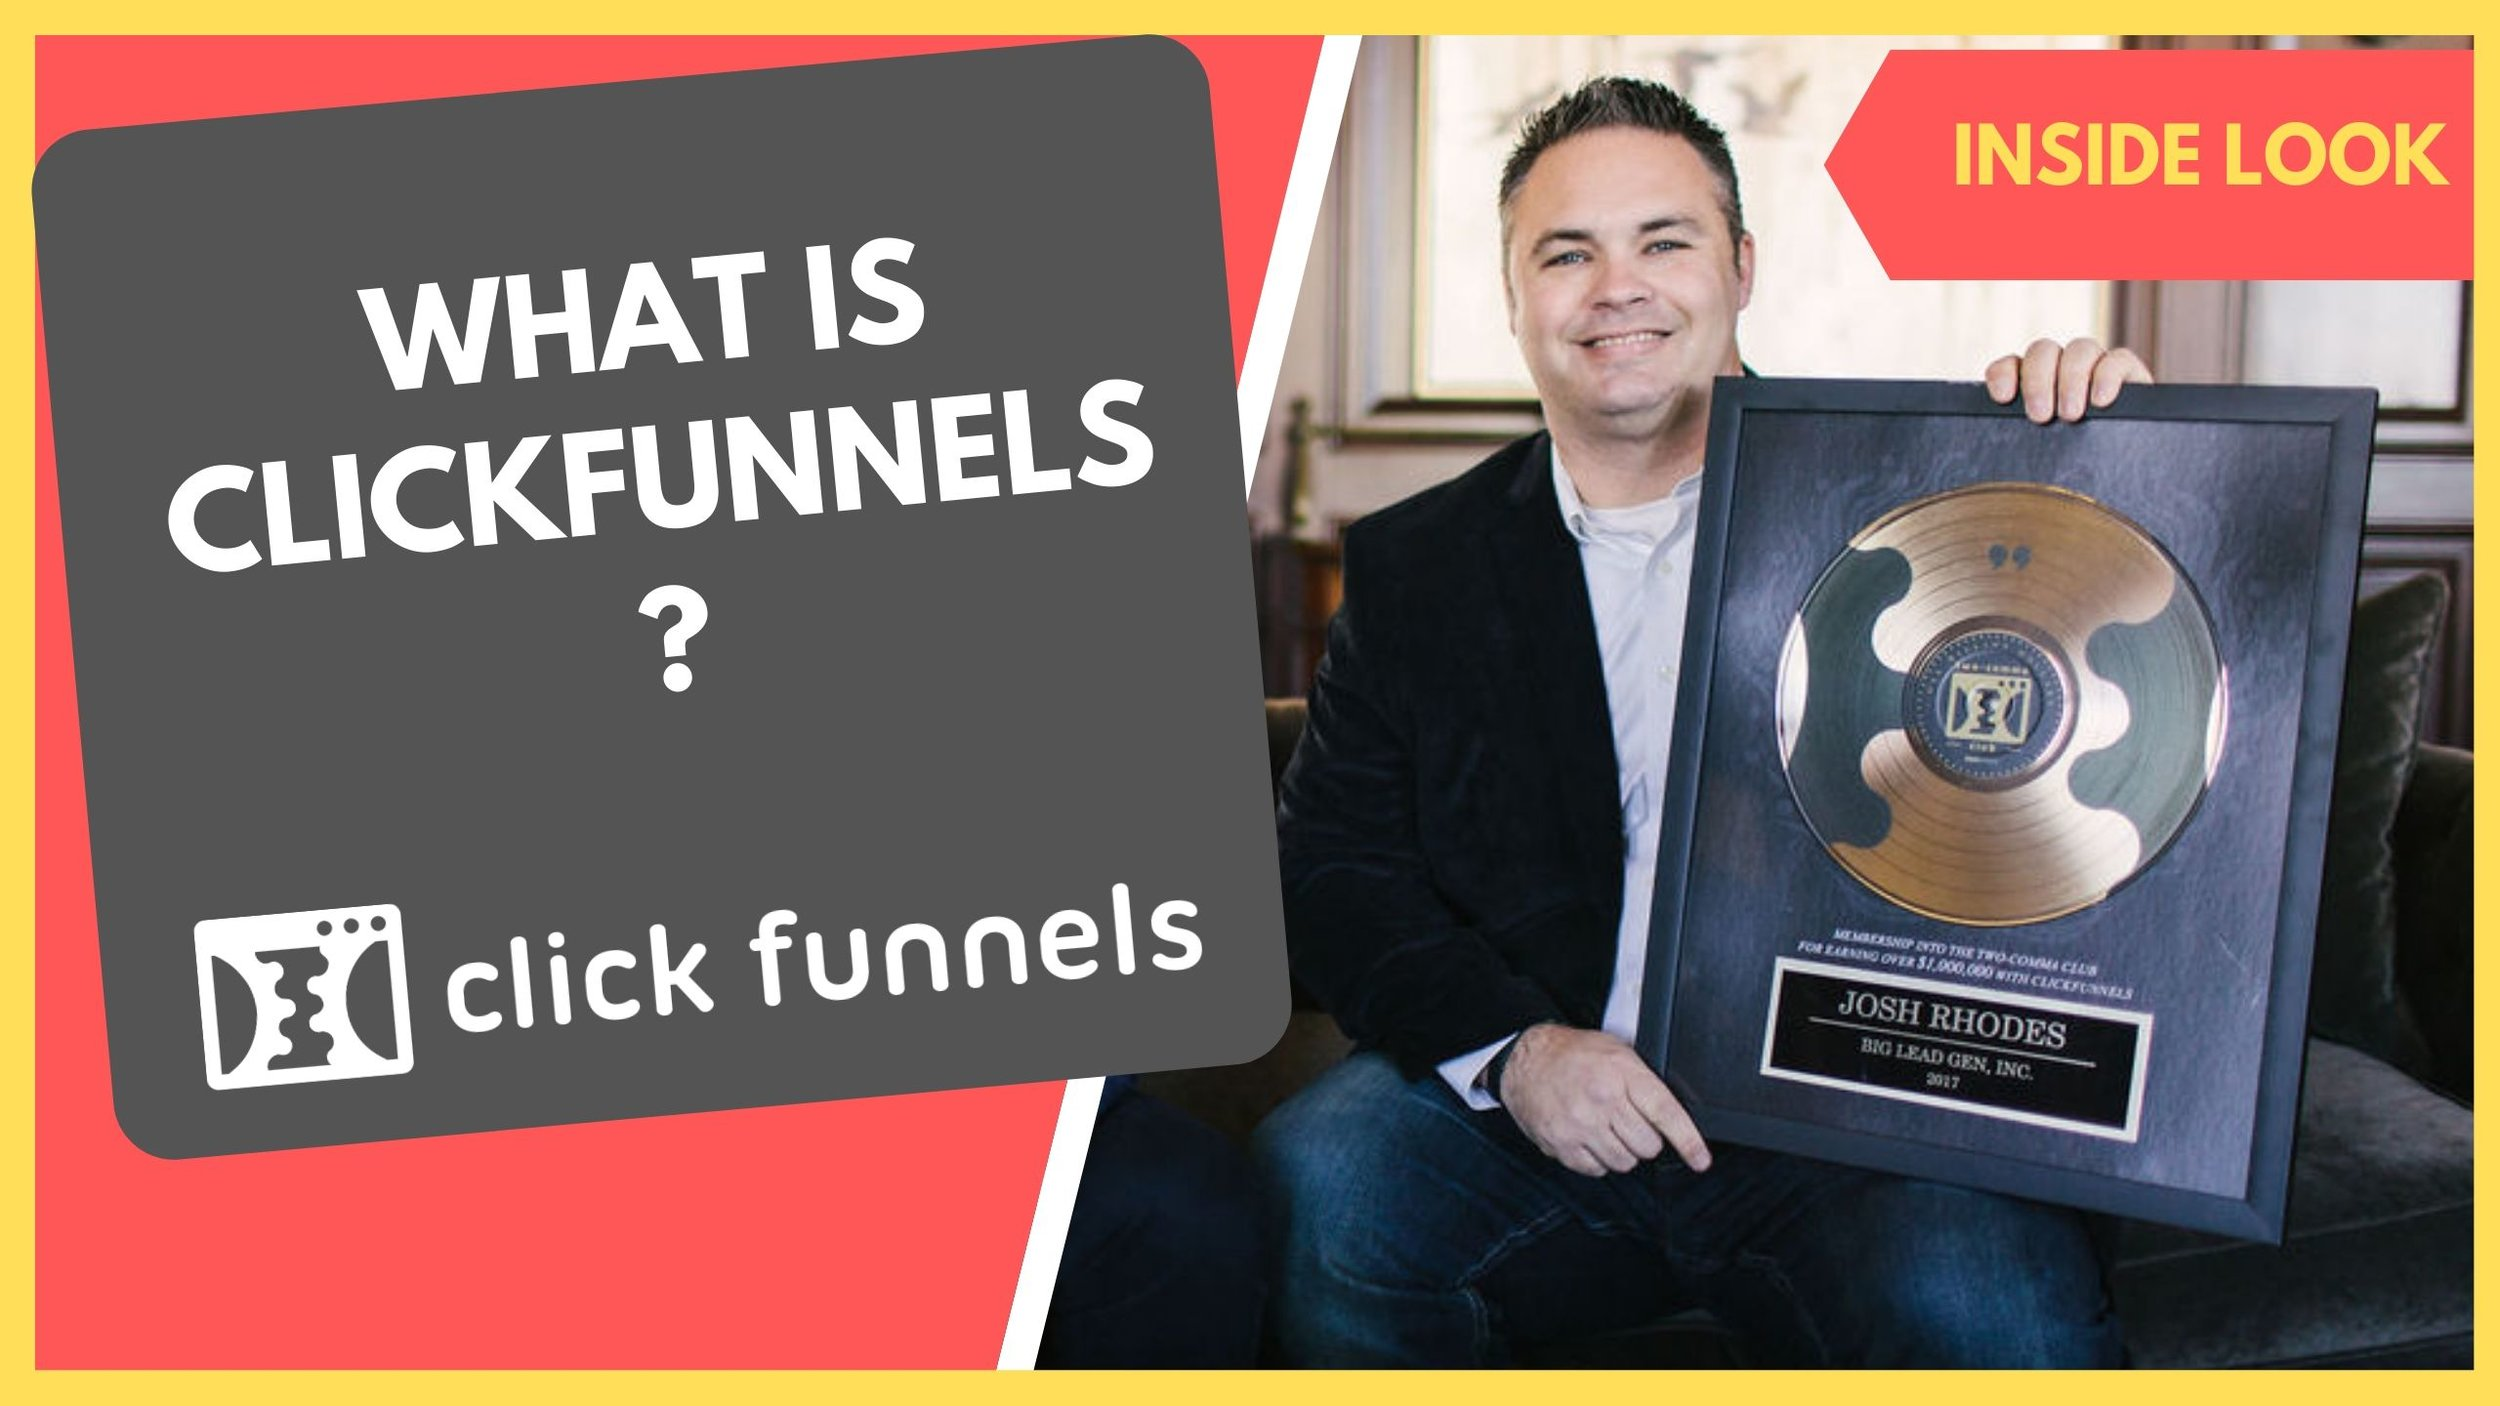 What Kind Of Funnel Is The Clickfunnels Main Page